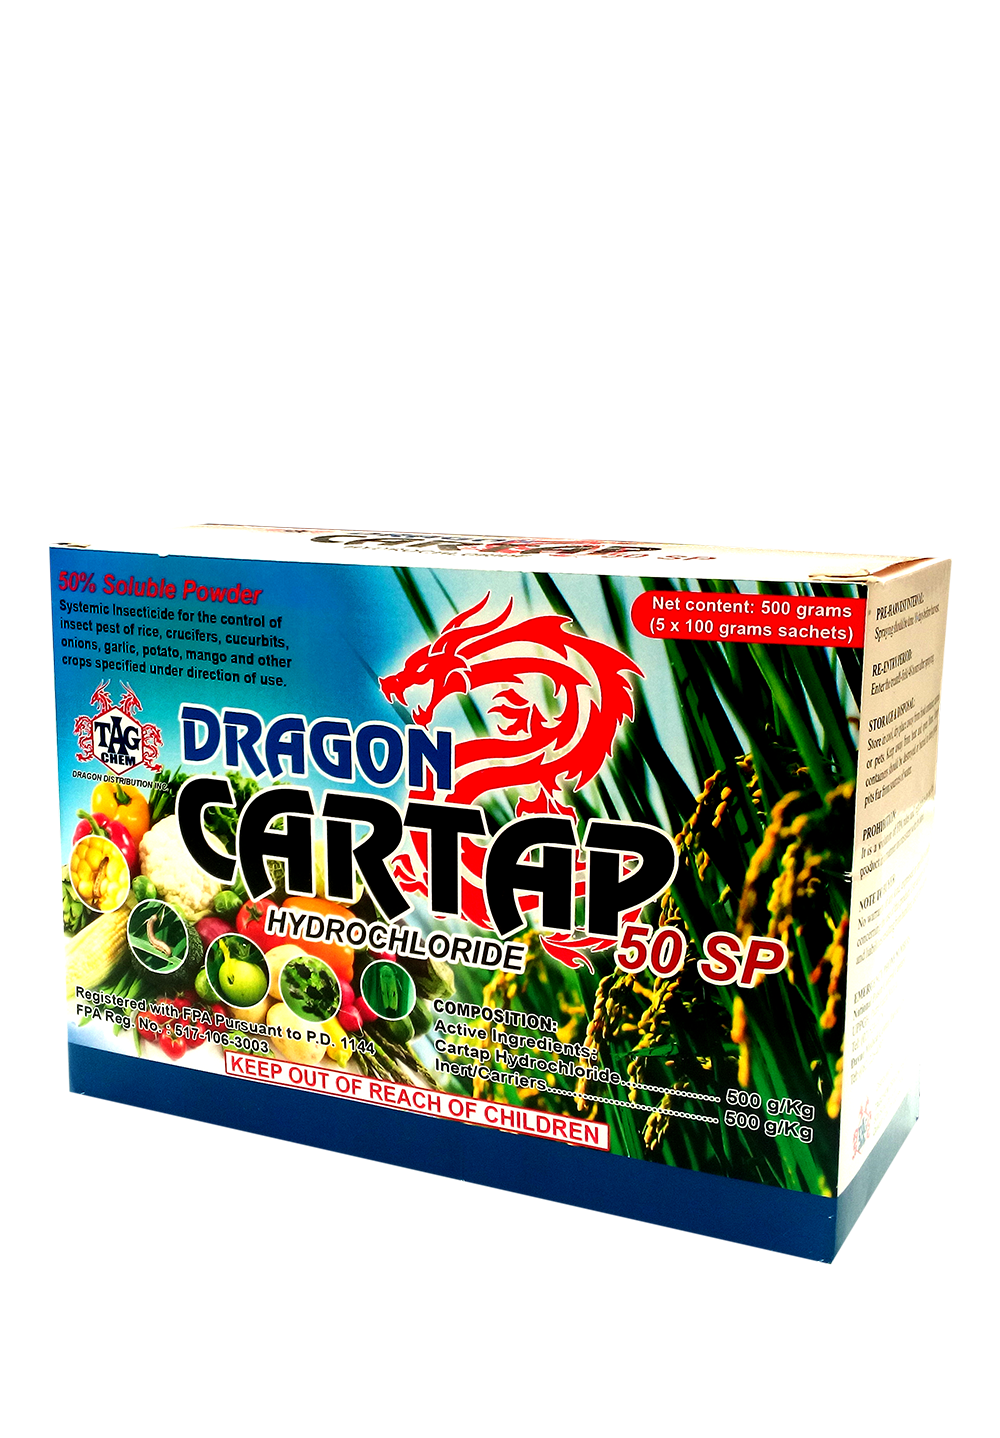 Dragon Cartap Image